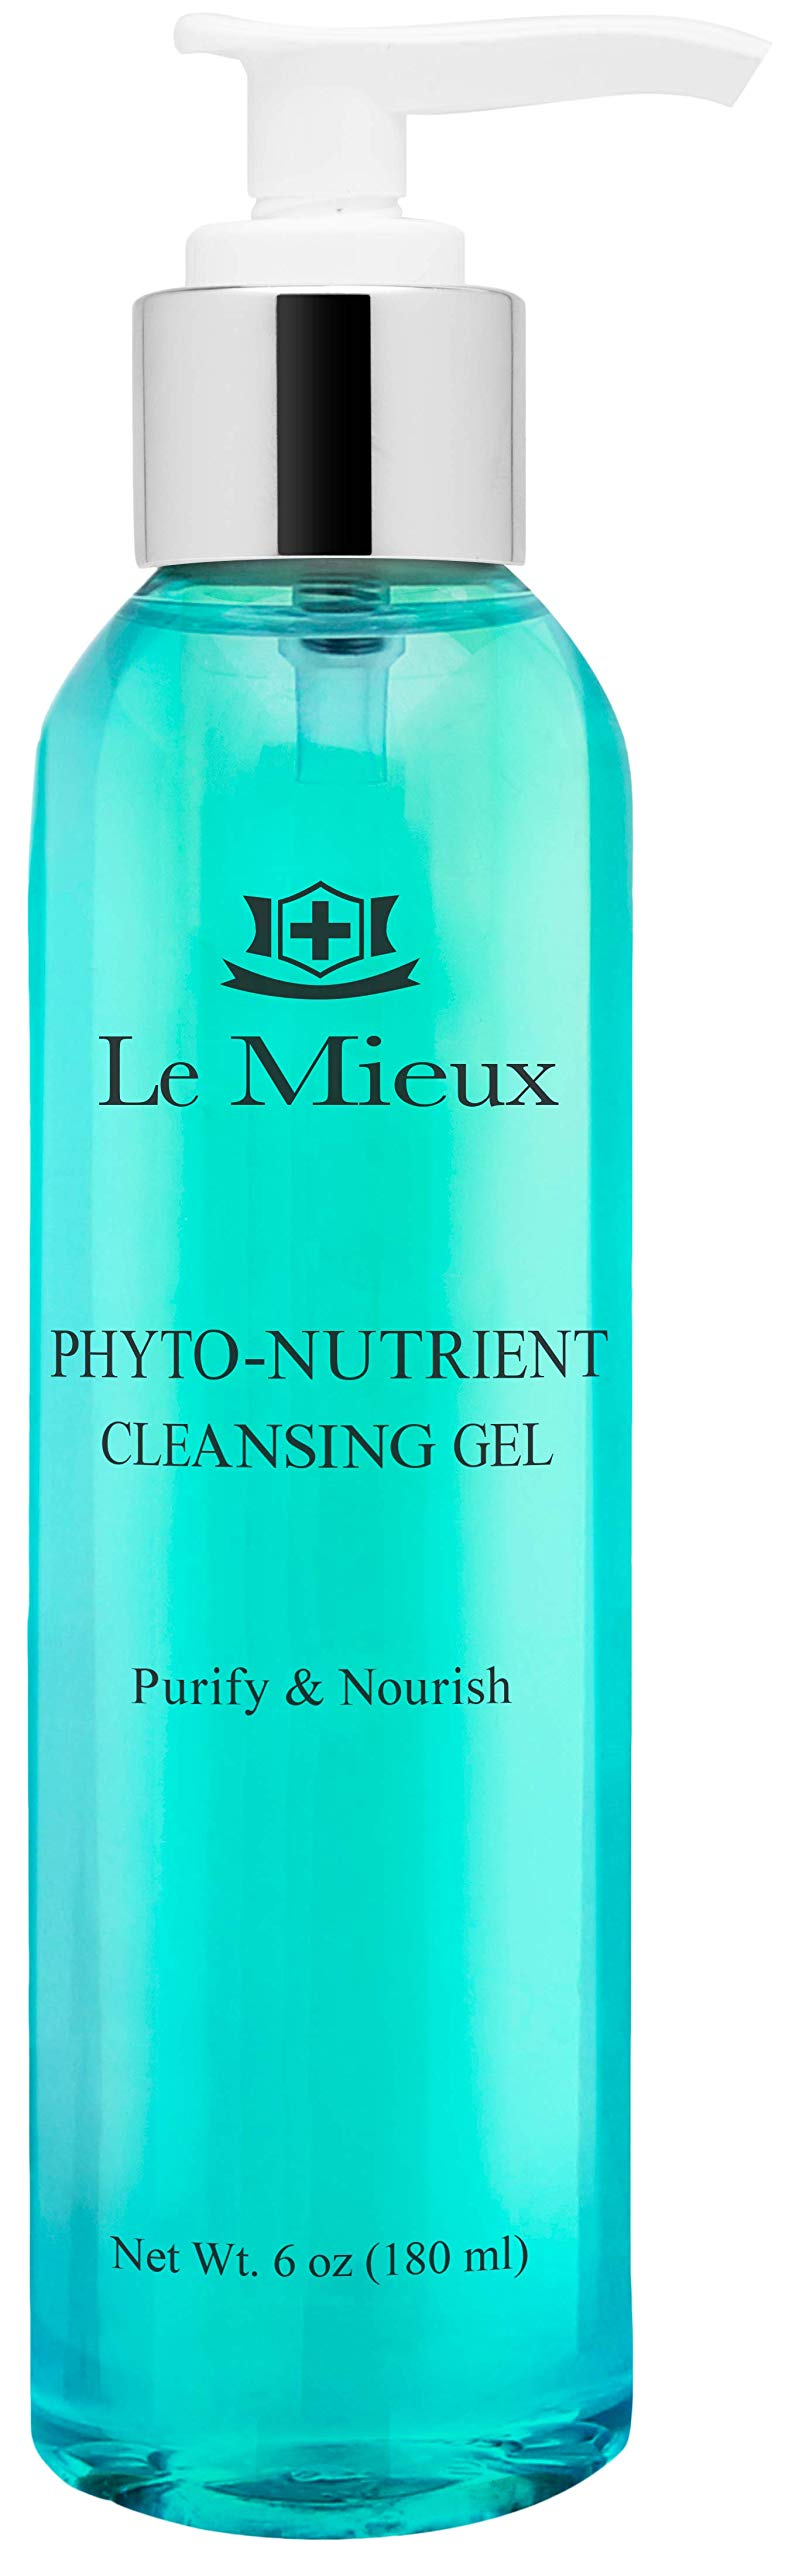 Le Mieux Phyto-Nutrient Cleansing Gel - Purifying, Foaming Face Wash with Algae & Arnica (6 oz / 180 ml)